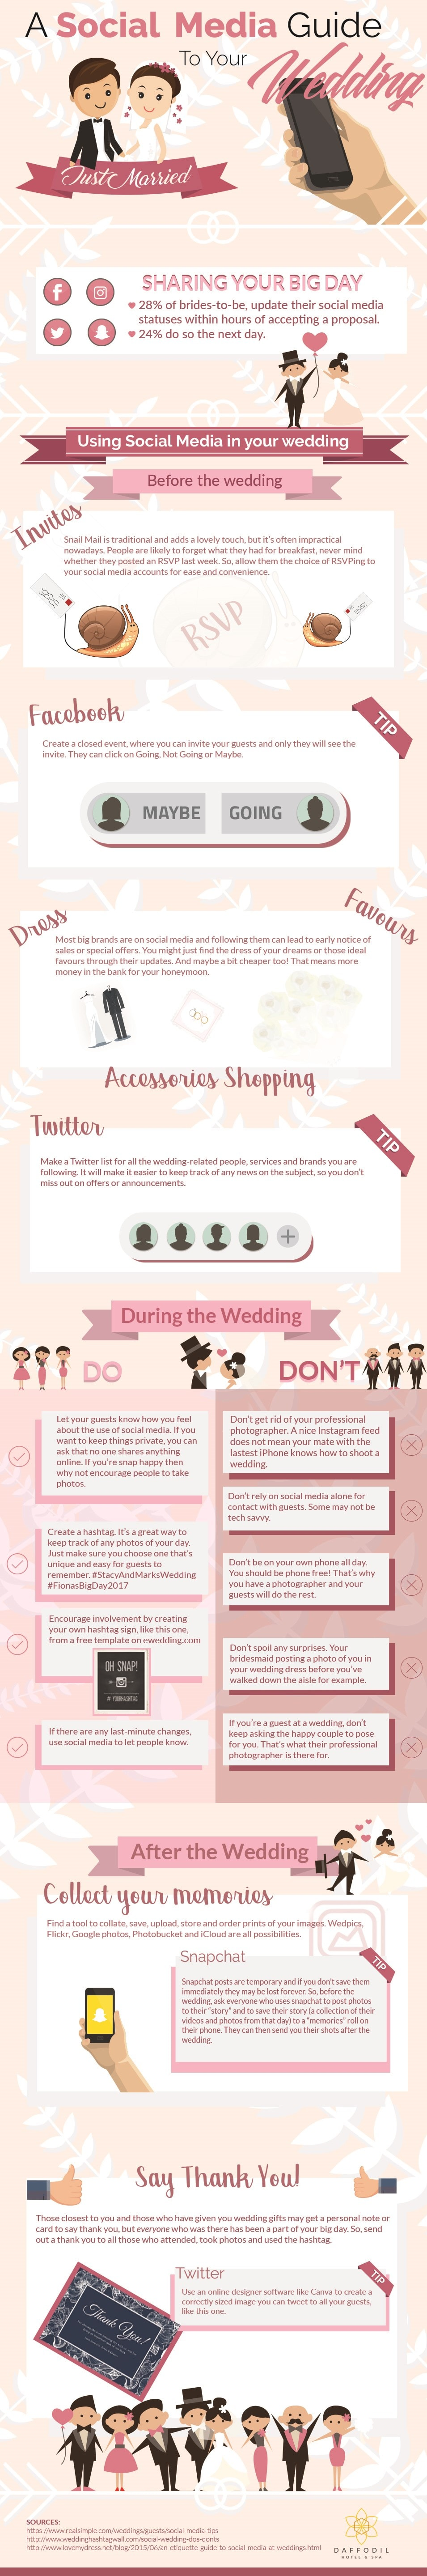 A social media guide to your destination wedding Infographic 1